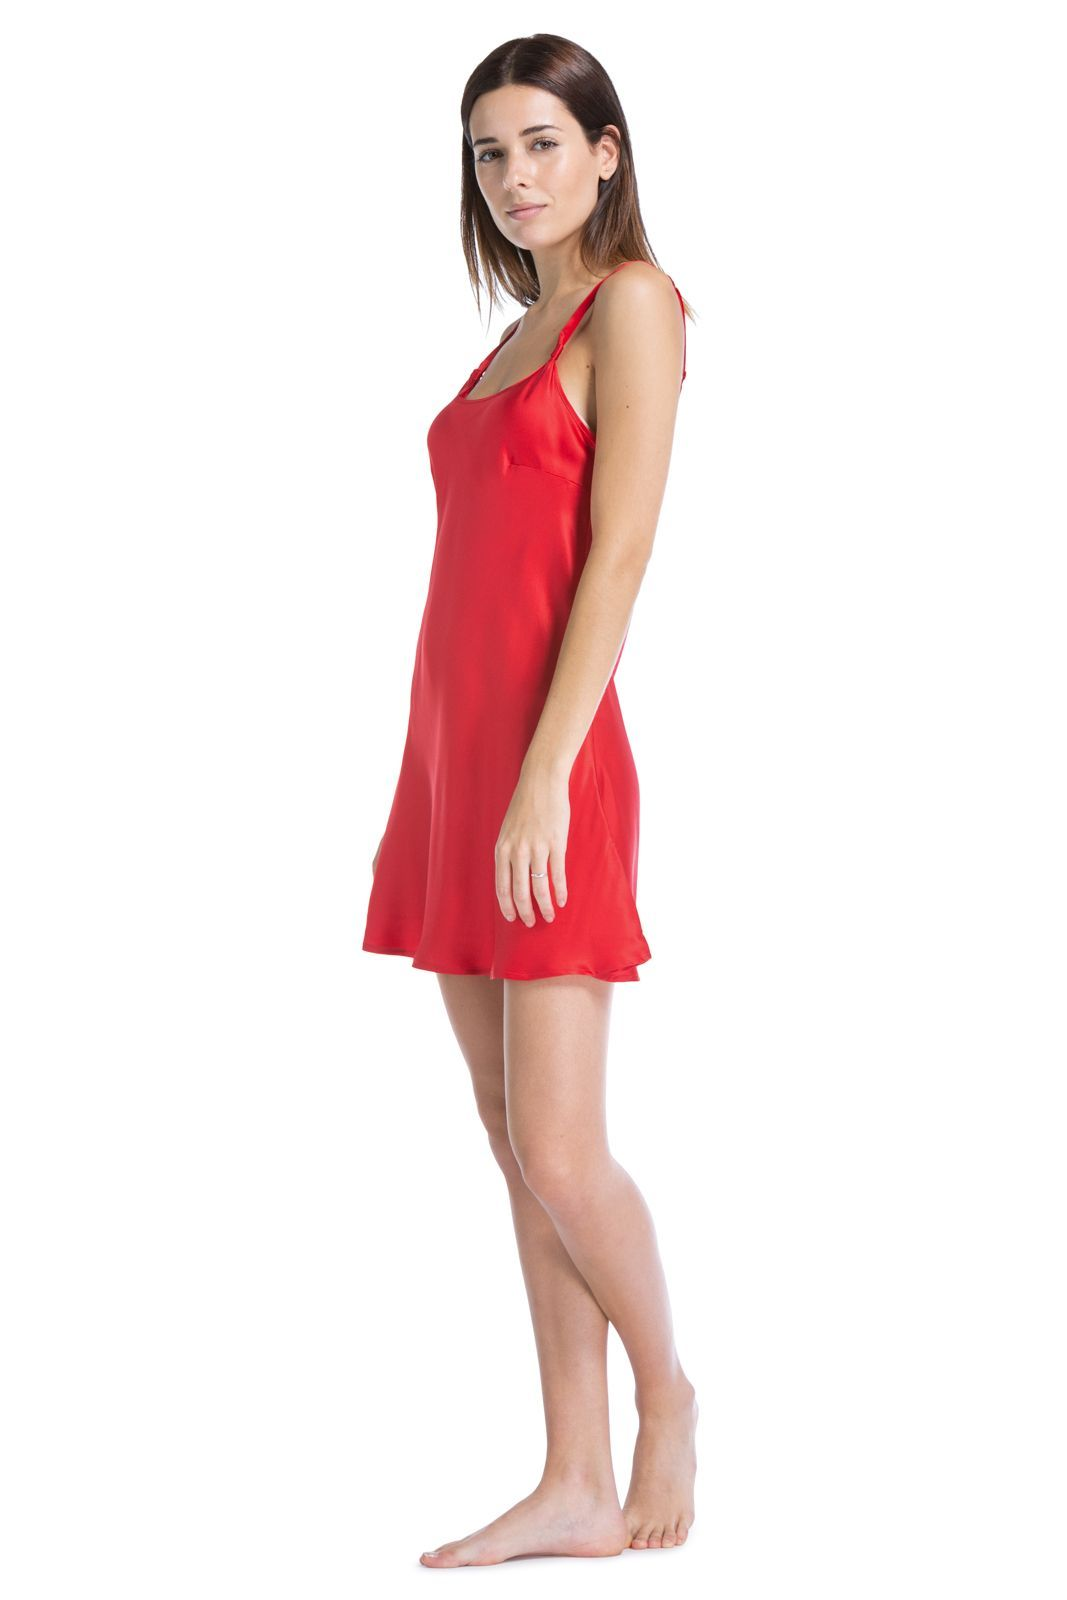 2c870f581ea Fishers Finery Women s 100% Mulberry Silk Chemise